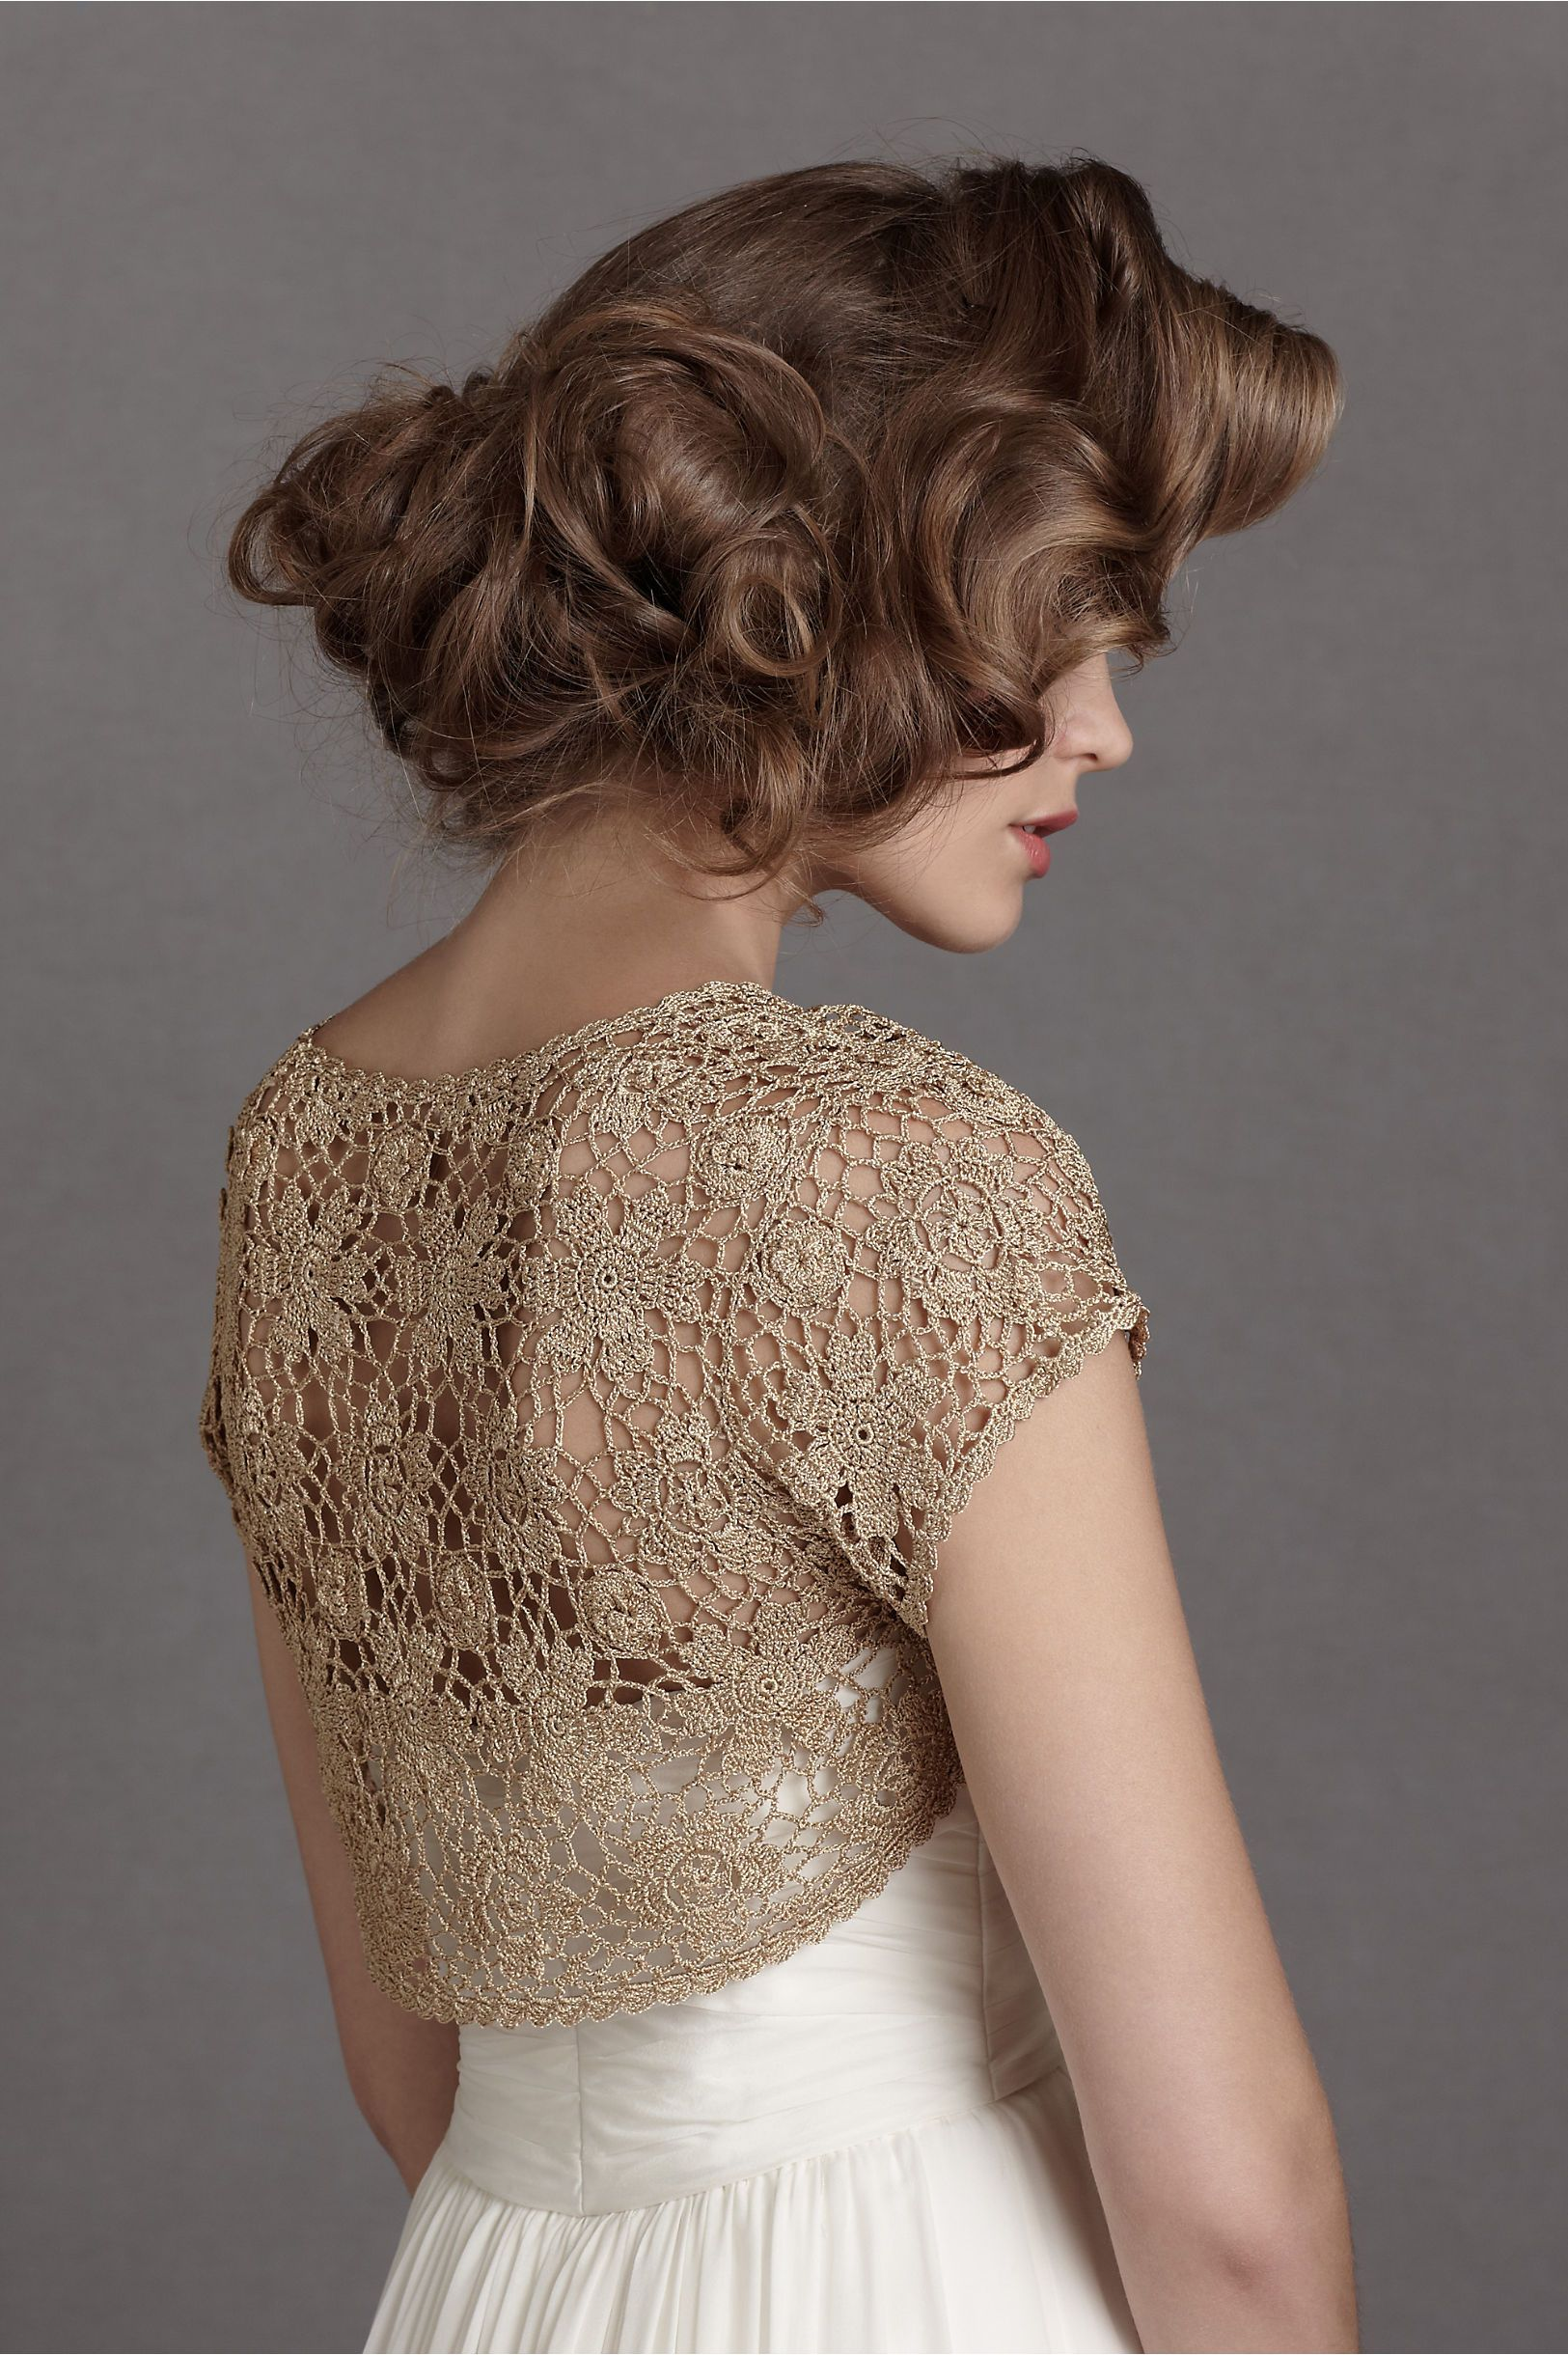 Spun Gold Topper in SHOP Bridesmaids & Partygoers Cover Ups at BHLDN ...